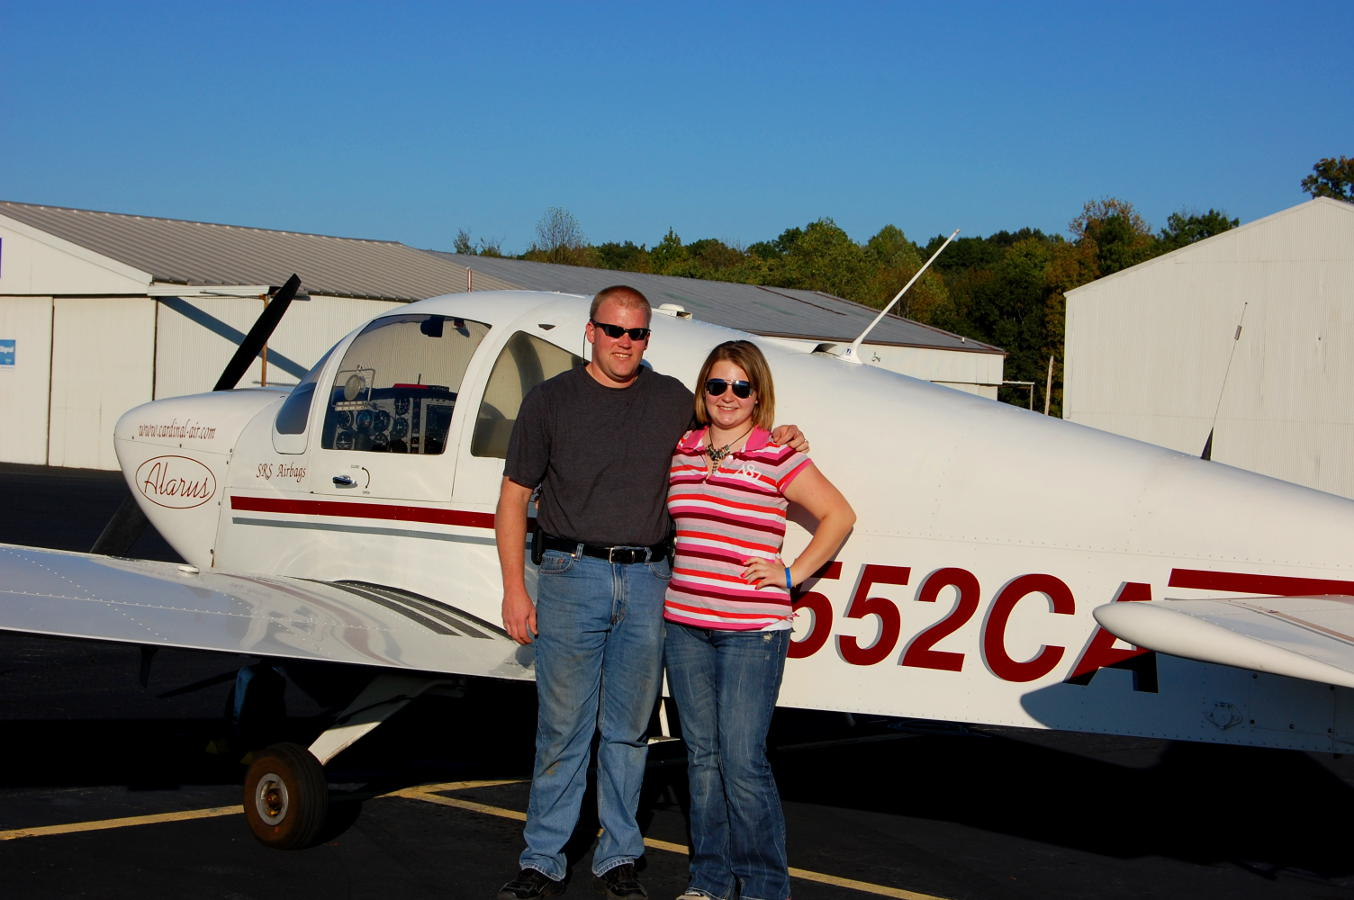 Student pilot and her father in front of a small aircraft - My Discovery Flight